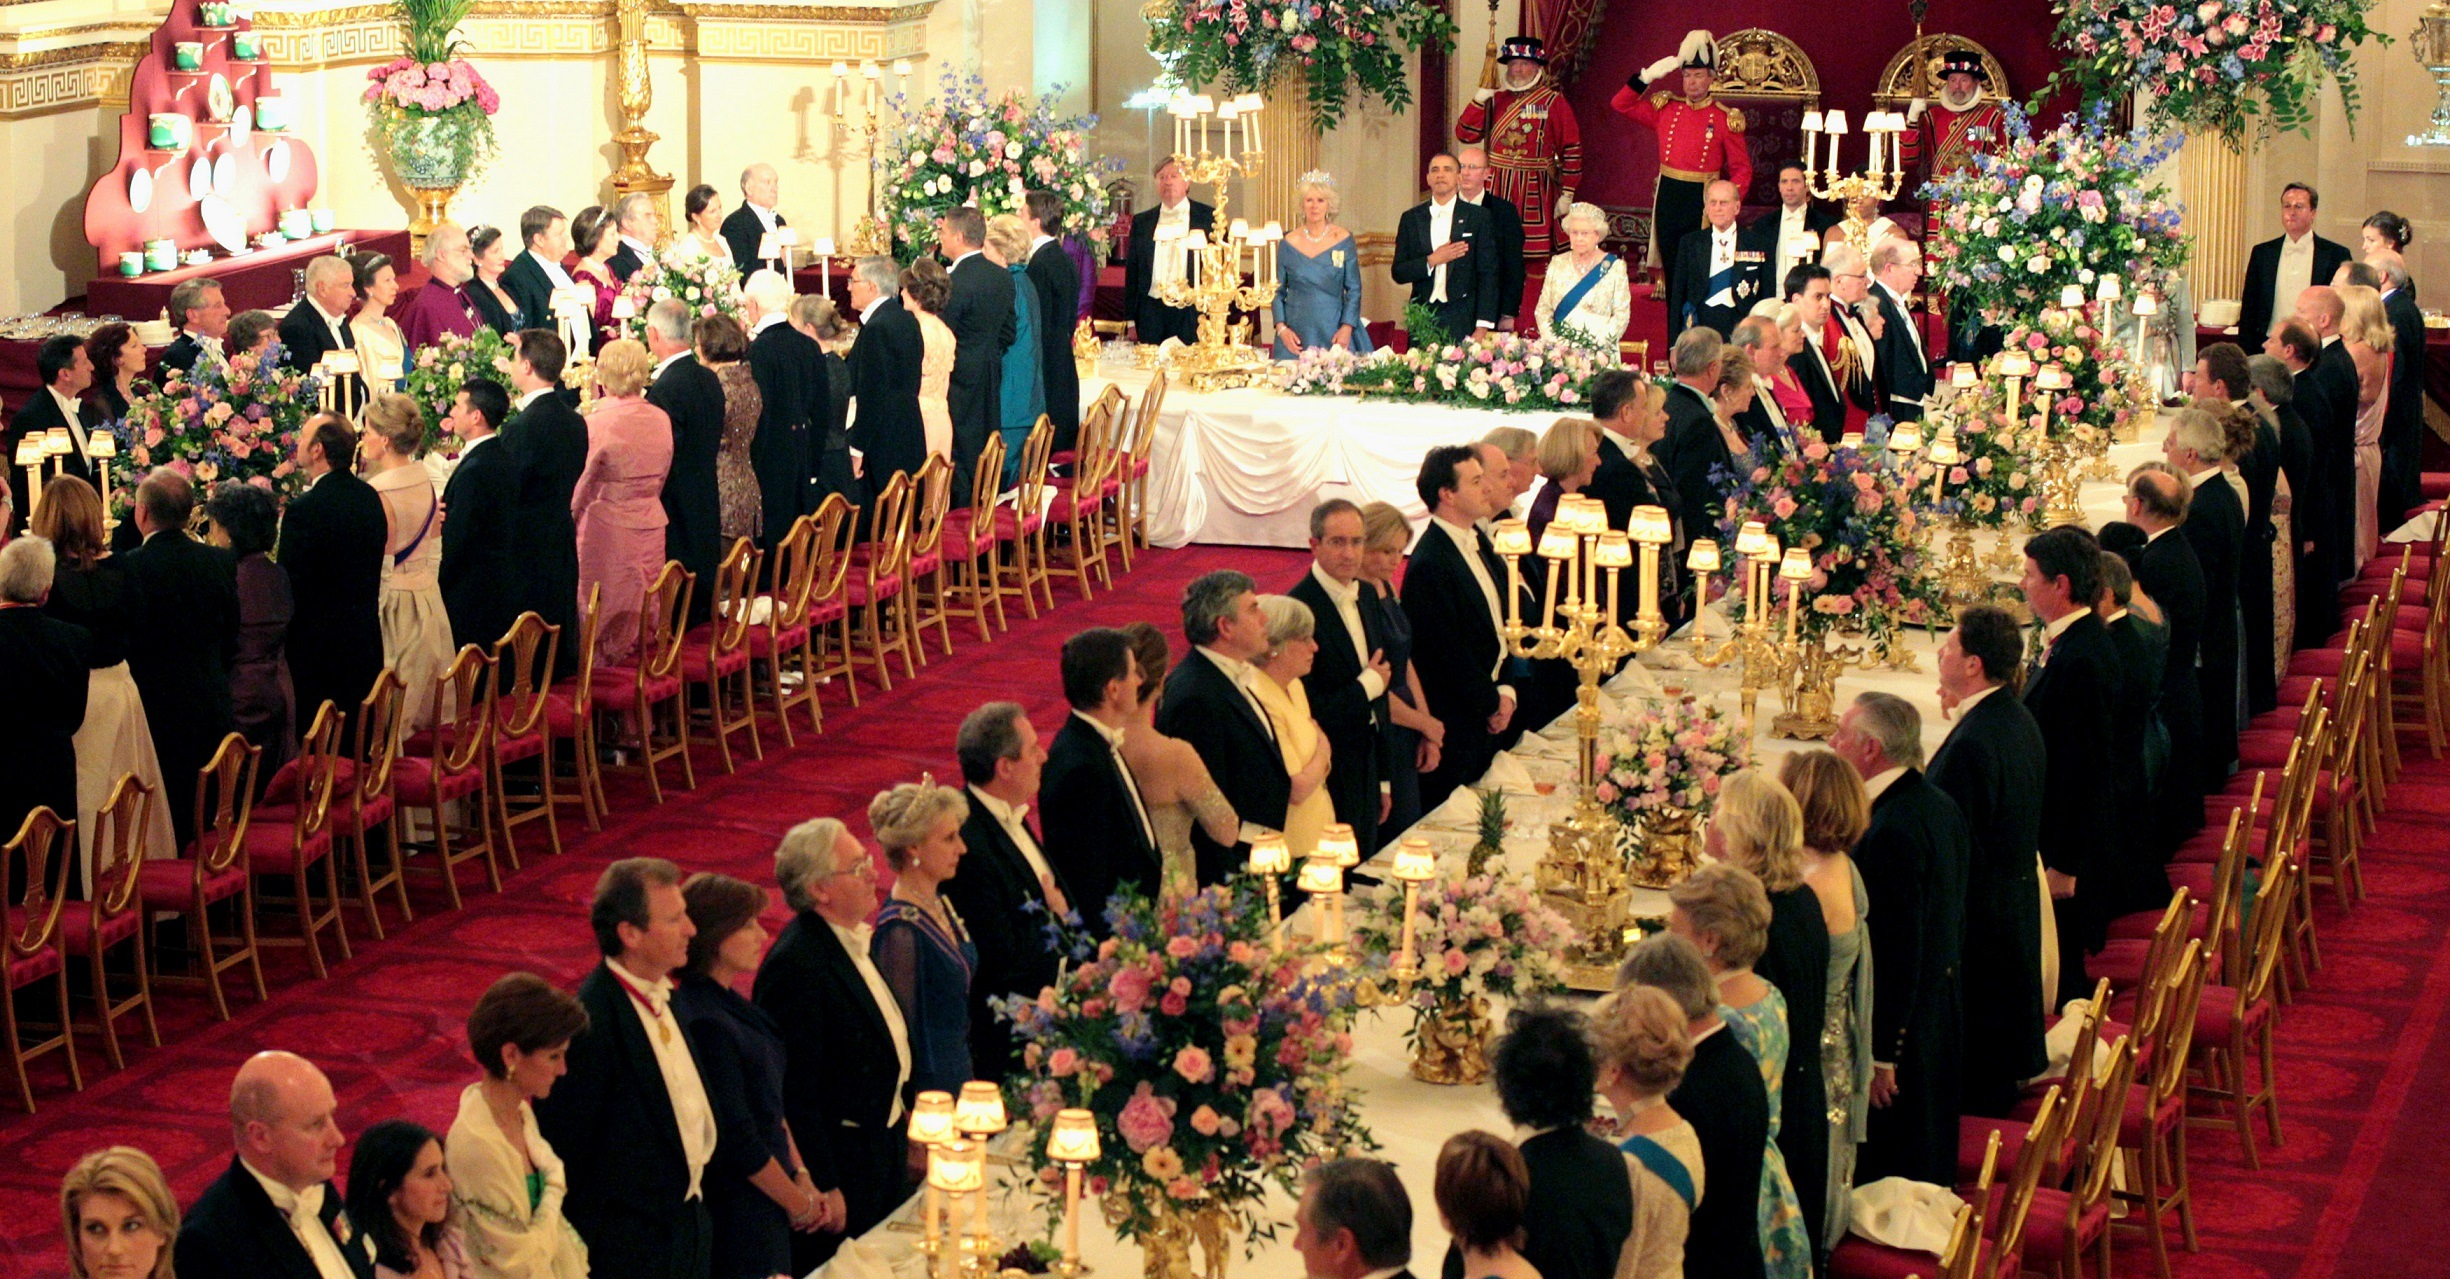 Royal Banquet